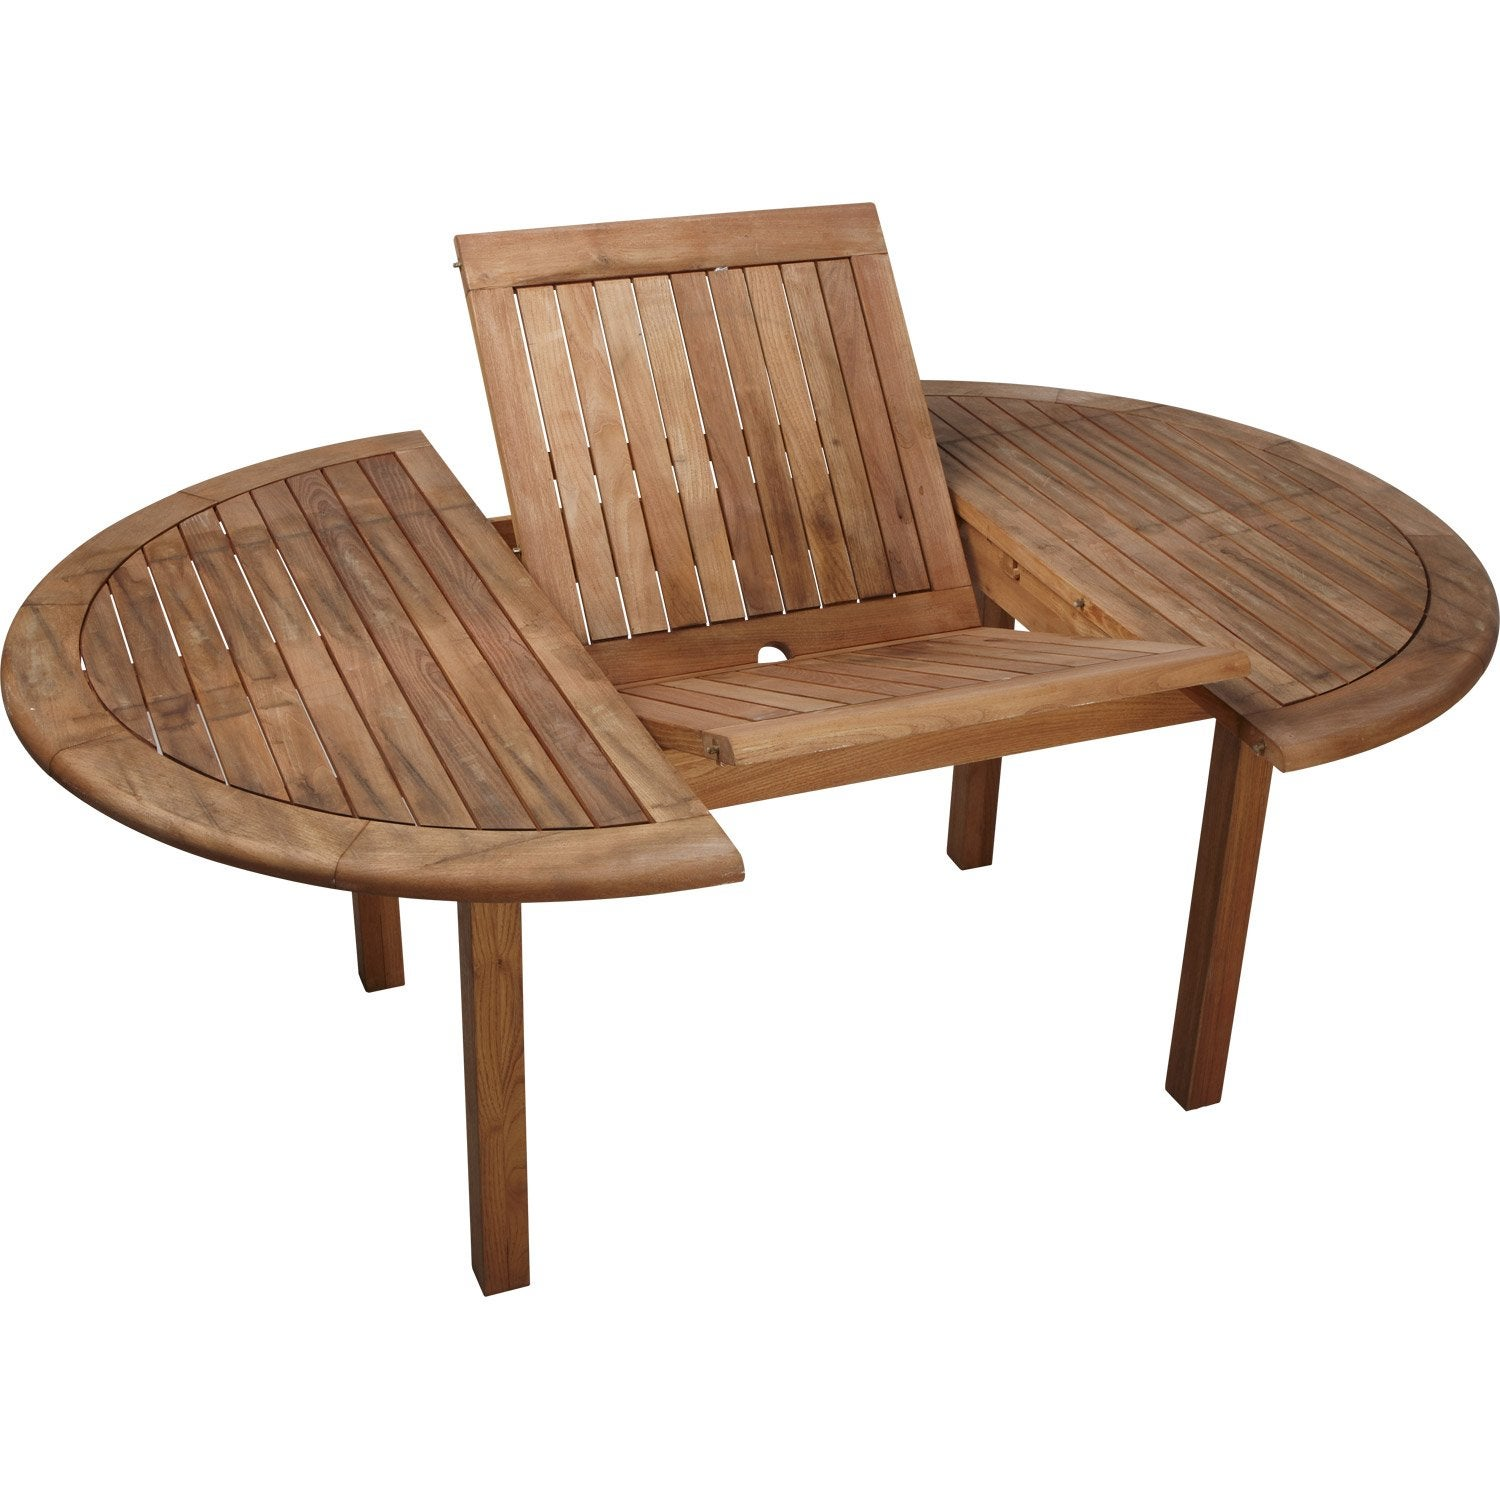 Dimension table salon de jardin for Mobilier de jardin leroy merlin